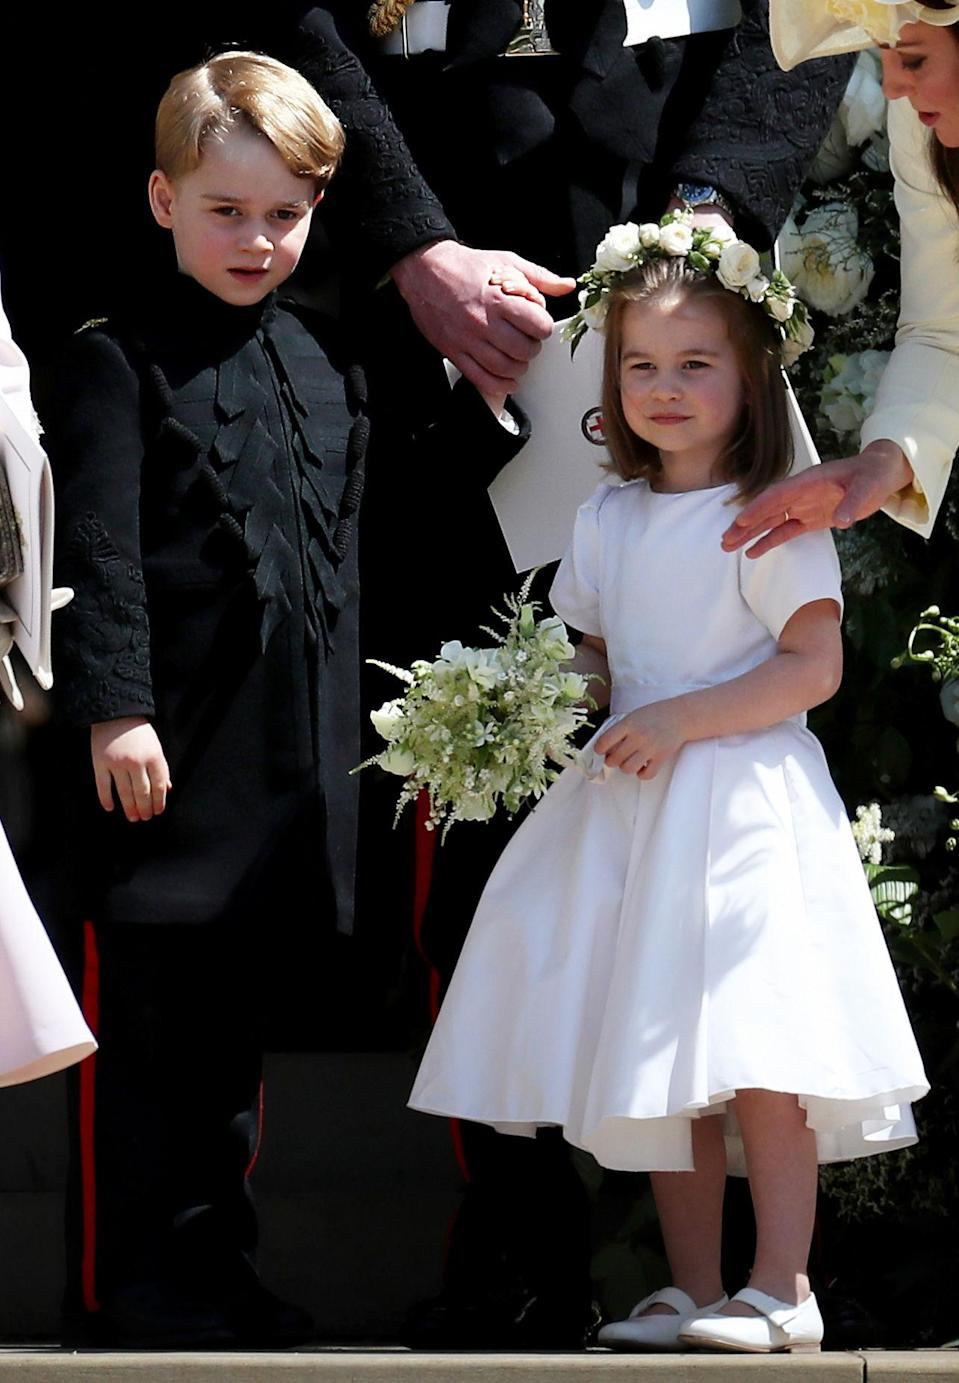 Prince George and Princess Charlotte at Meghan and Harry's wedding (PA)